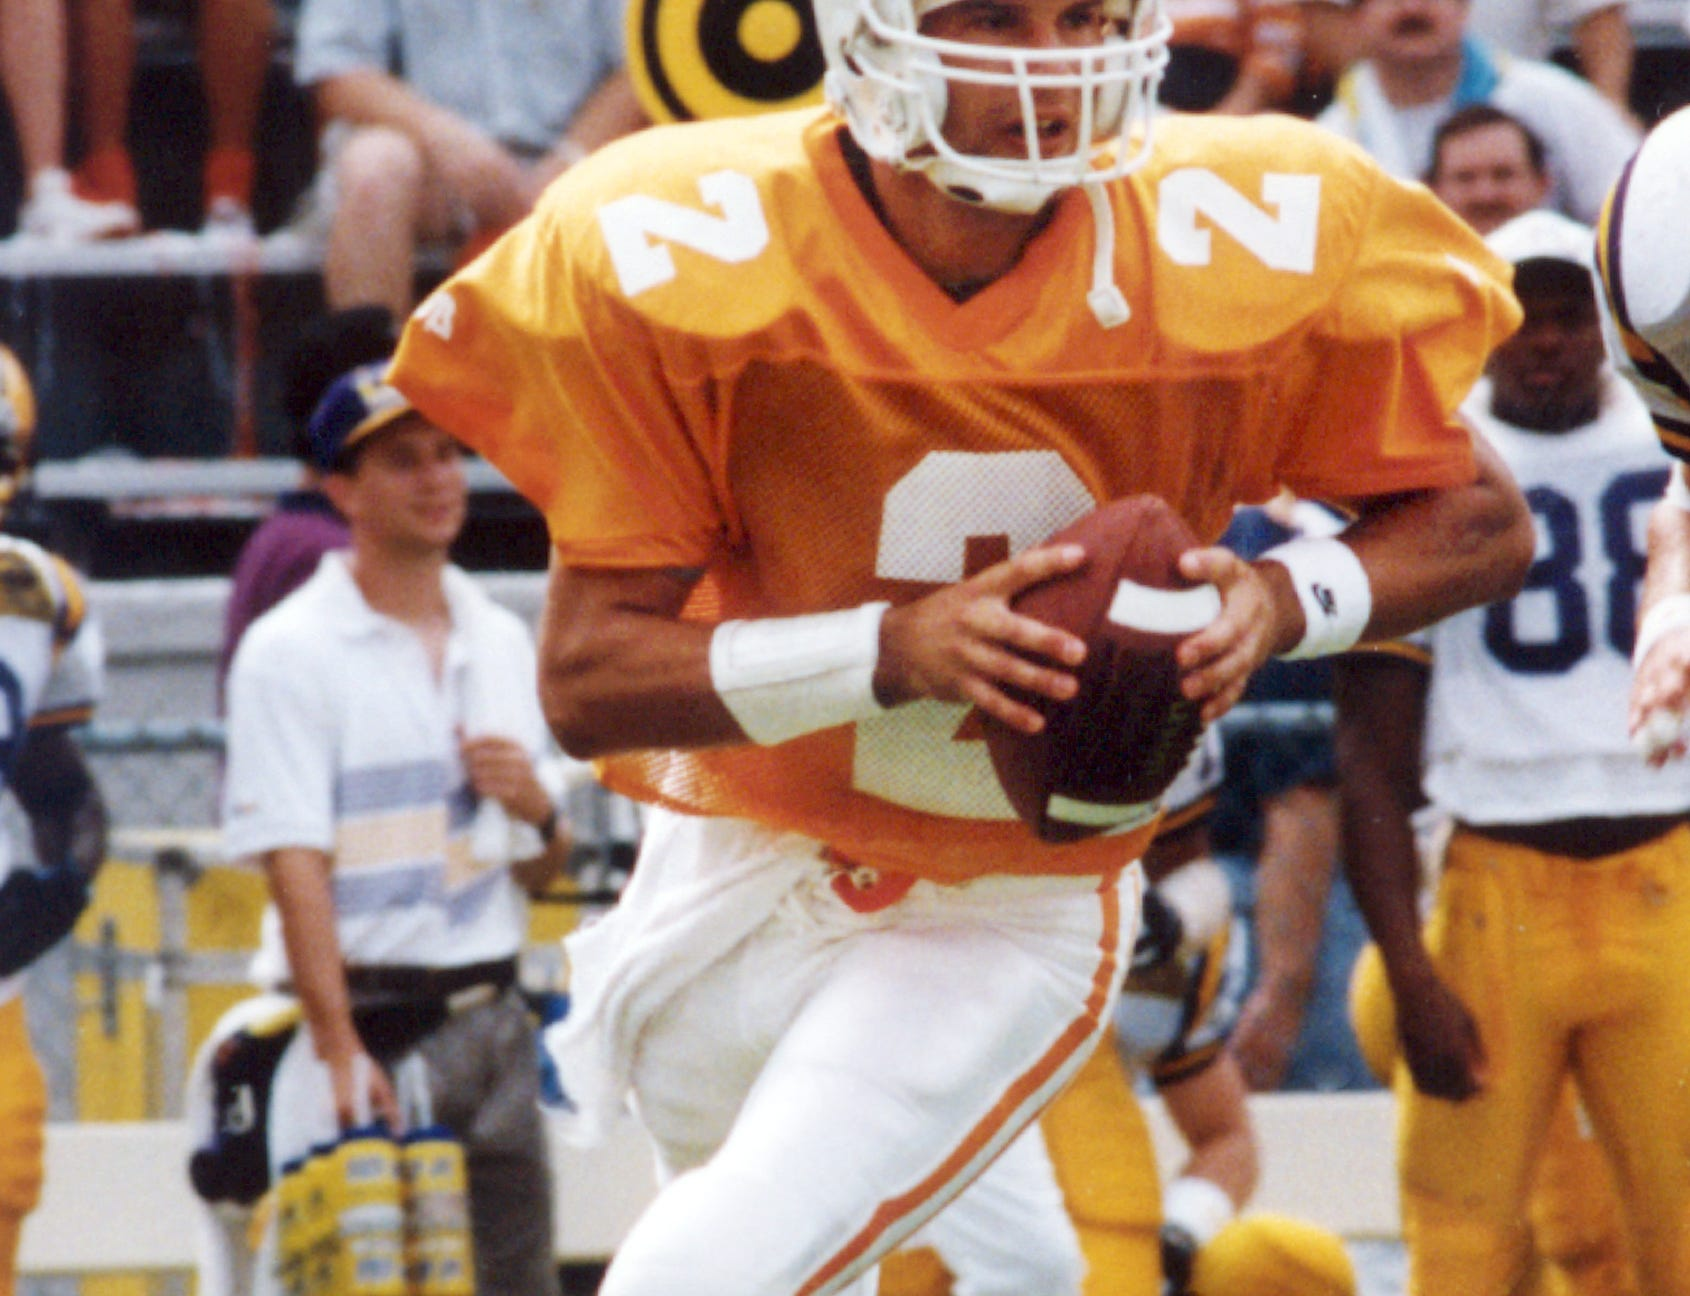 In this handout photo provided by the University of Tennessee, Tennessee quarterback Todd Helton is shown in action against against LSU in a 1993 college football game in Knoxville, Tenn. The World Series bound Colorado Rockies have connections to the first family of football, first baseman Todd Helton and outfielder Seth Smith having backed up members of the Manning family as college quarterbacks.